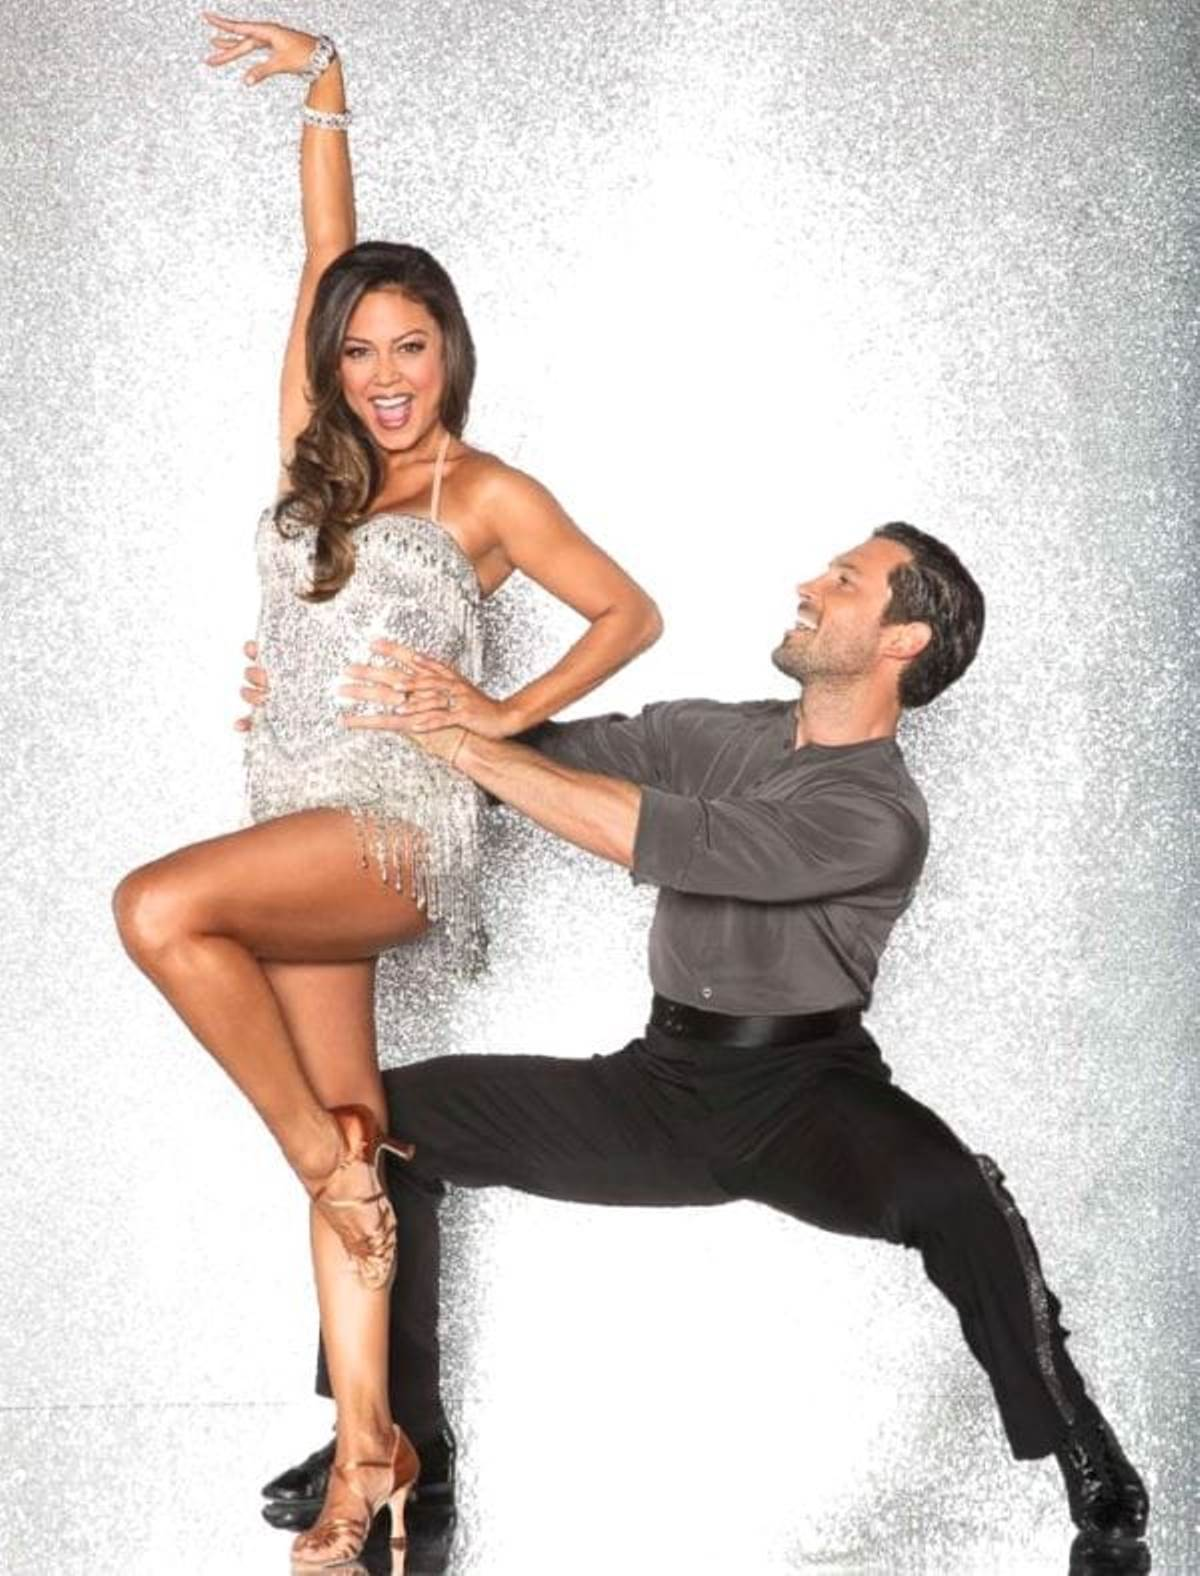 Maks Chmerkovskiy Skipped DWTS Performance Due to 'Big Fight' With Vanessa Lachey, Might Not Return this Season